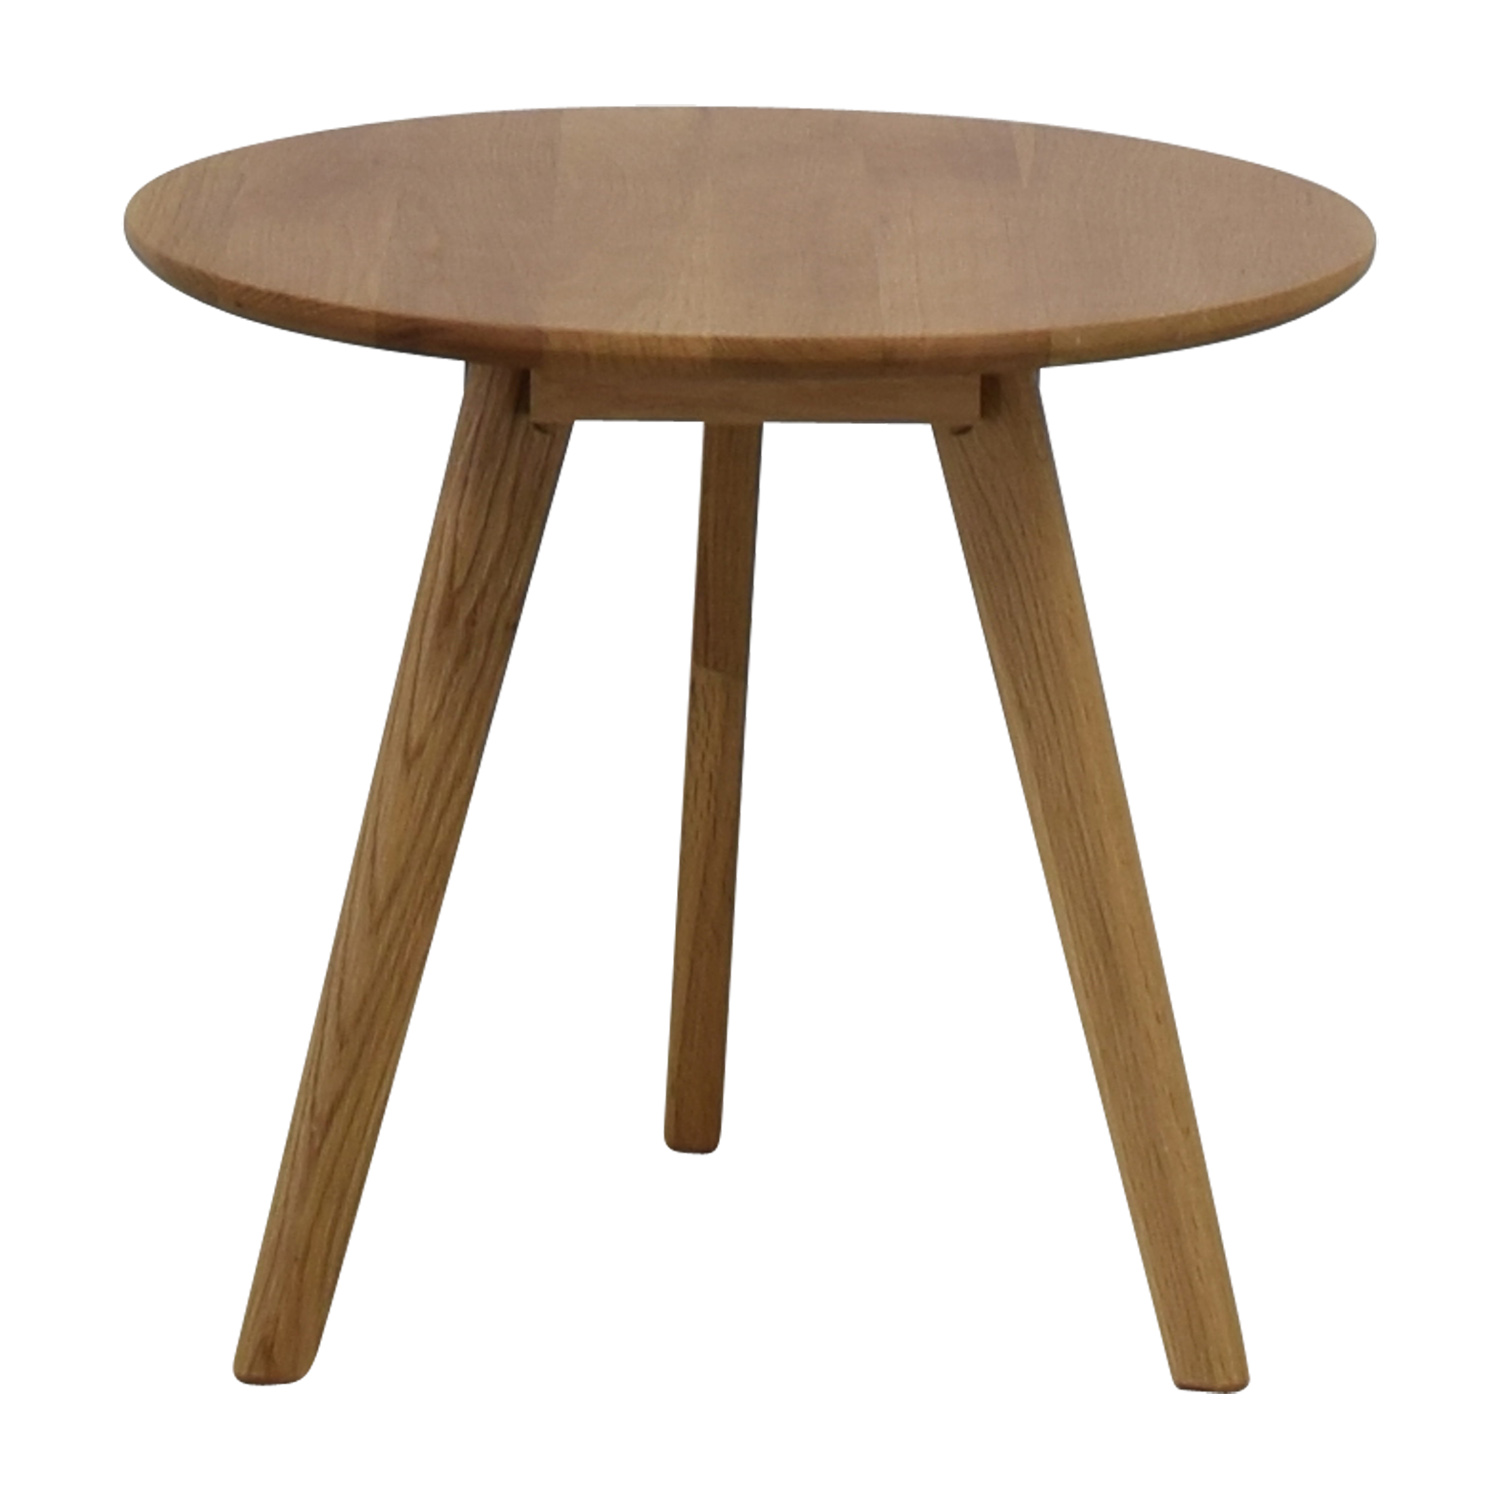 Akron Akron Elo Round Side Table second hand